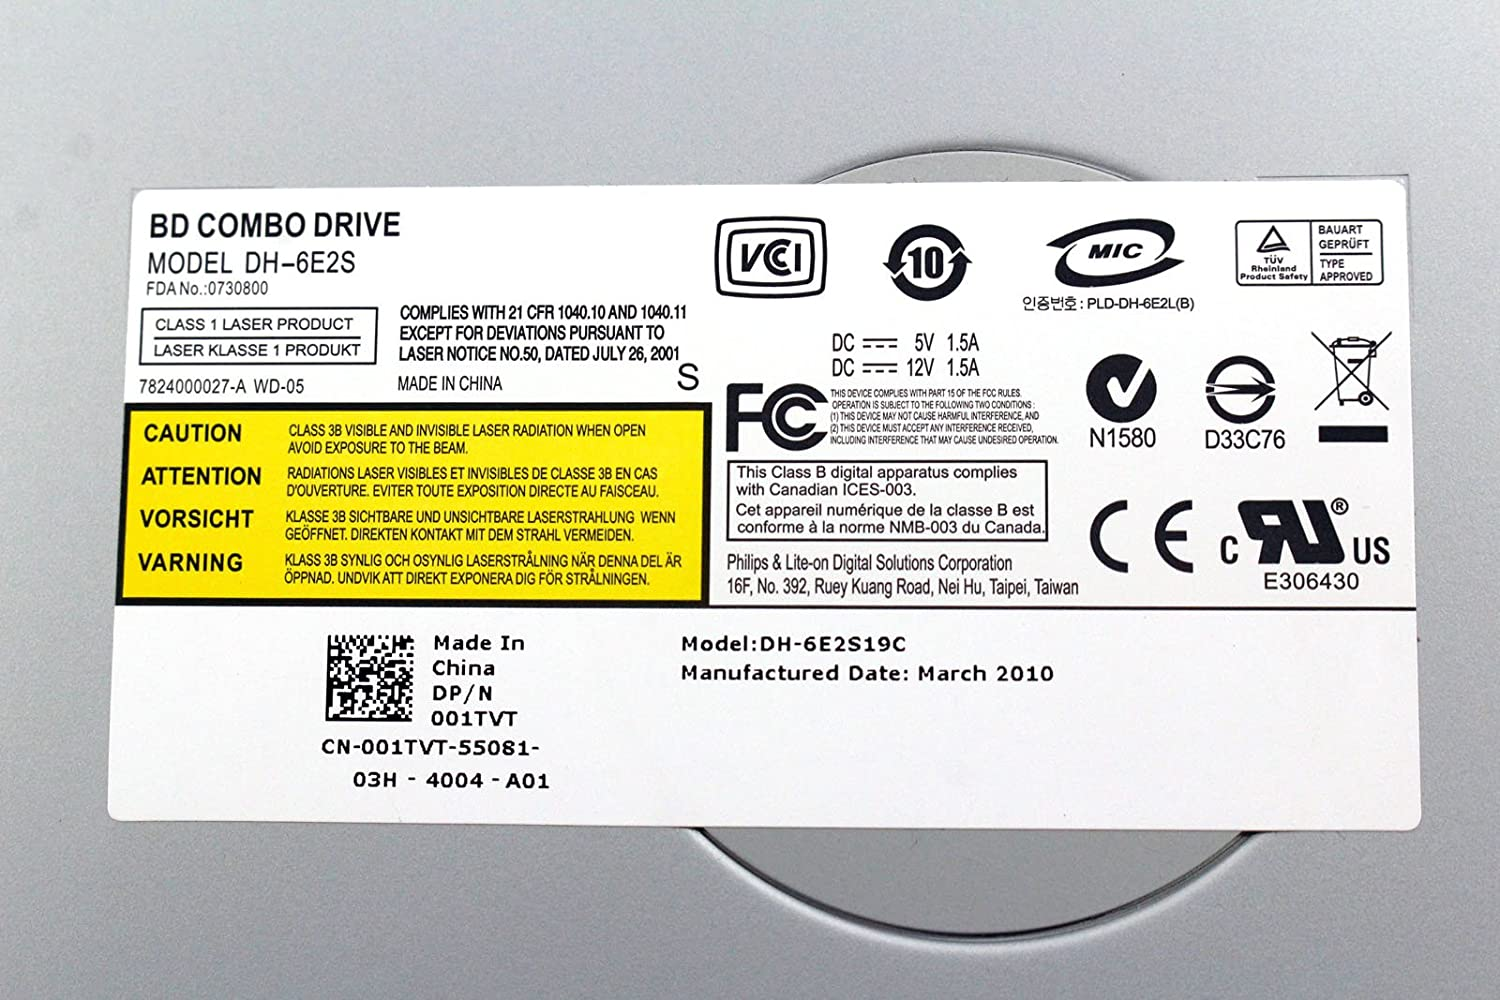 Dell Inspiron 560 PLDS DH-6E2S Drivers Download Free